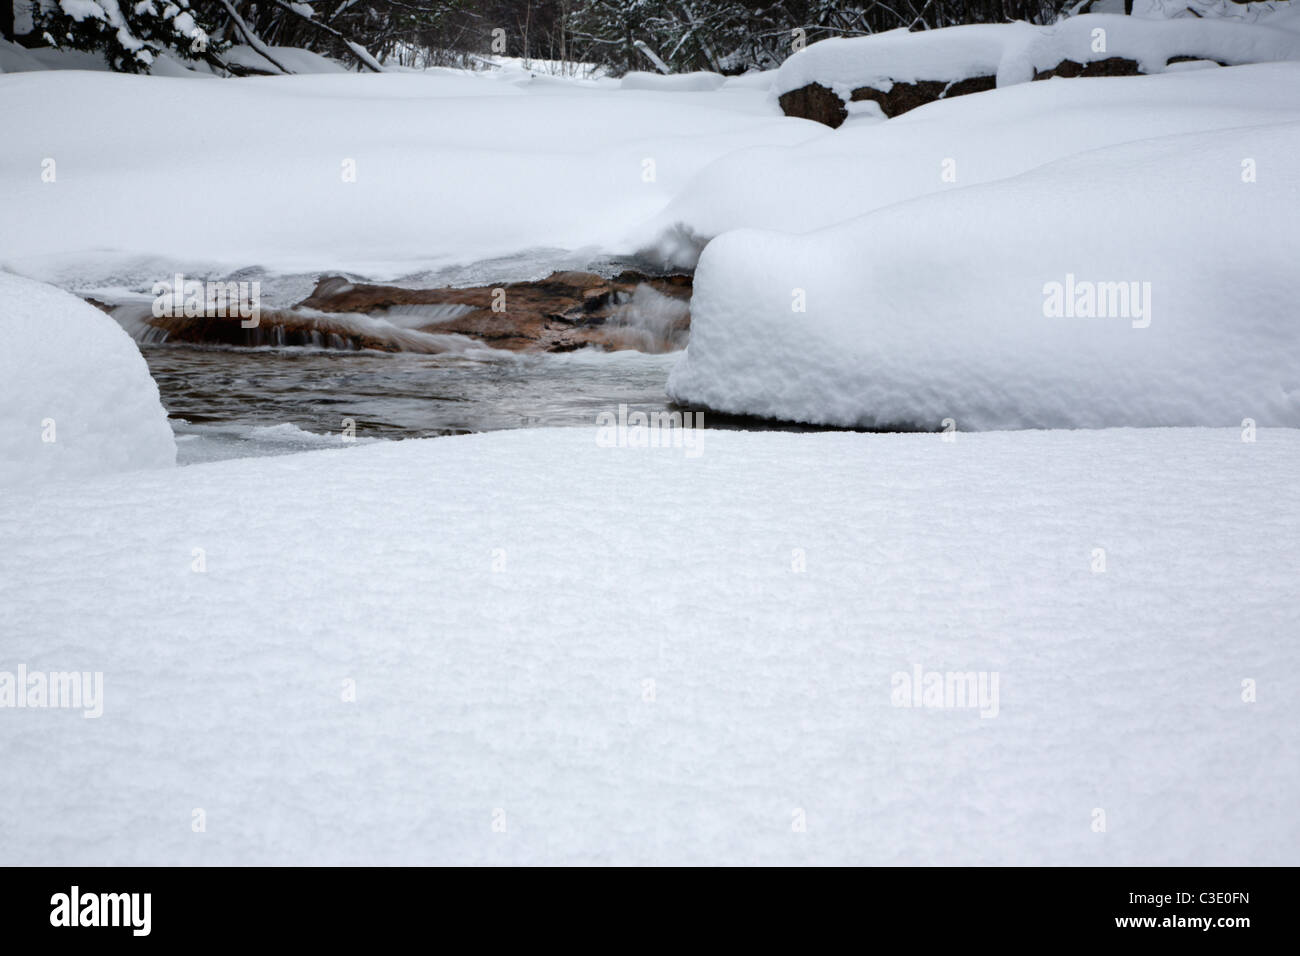 Otter Rocks day use area during the winter months. Located along the Kancamagus Highway (route 112) in New Hampshire Stock Photo